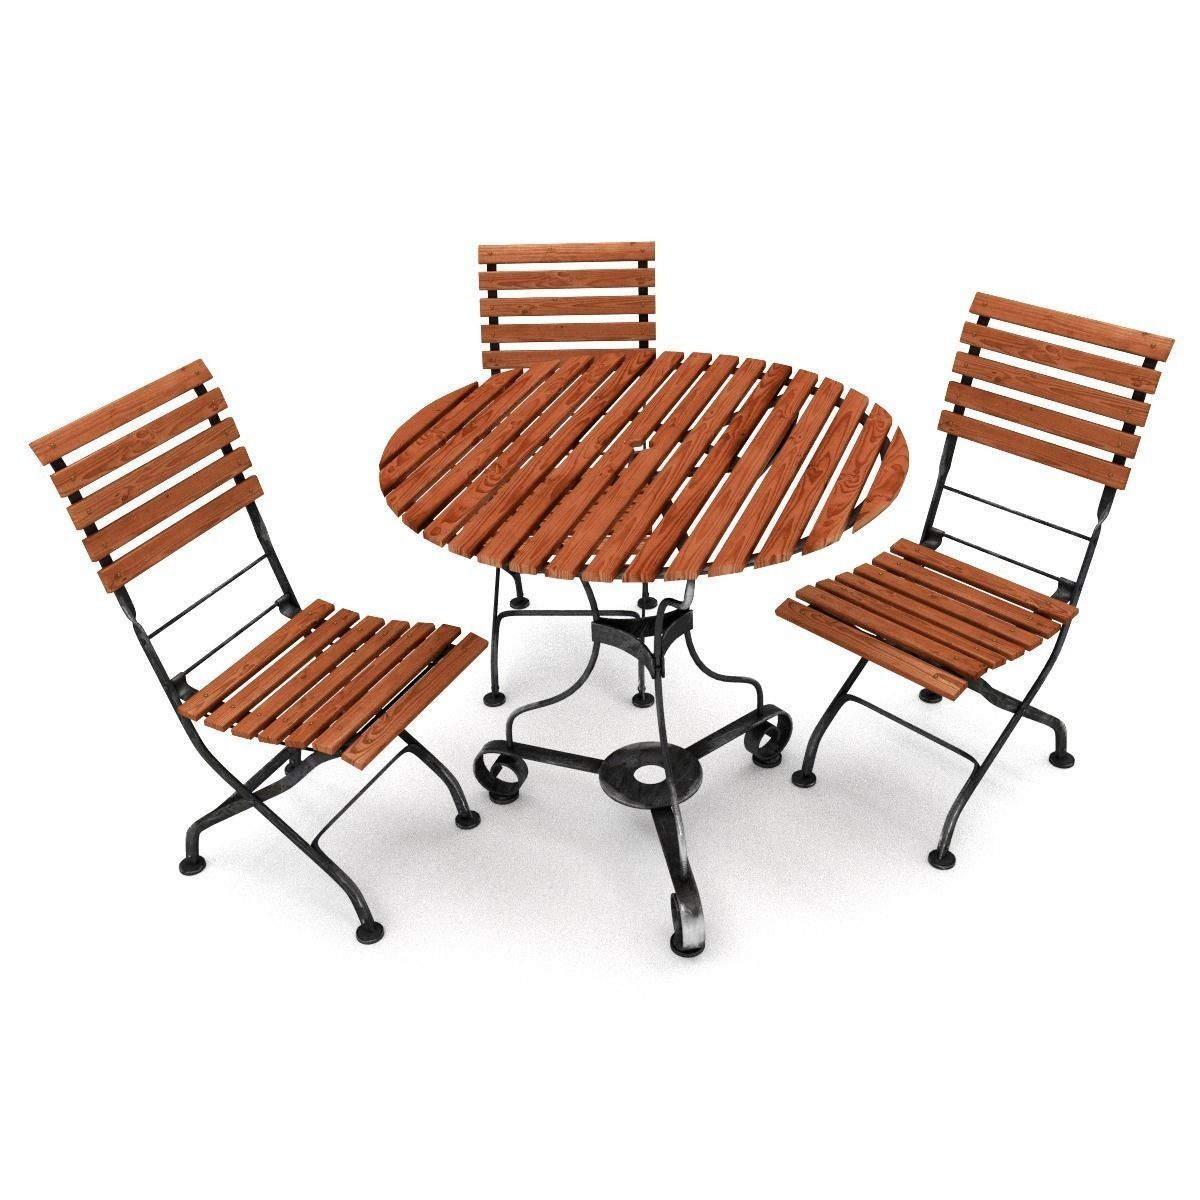 Garden Furniture Set 3d Model Obj Fbx Blend 1 ...